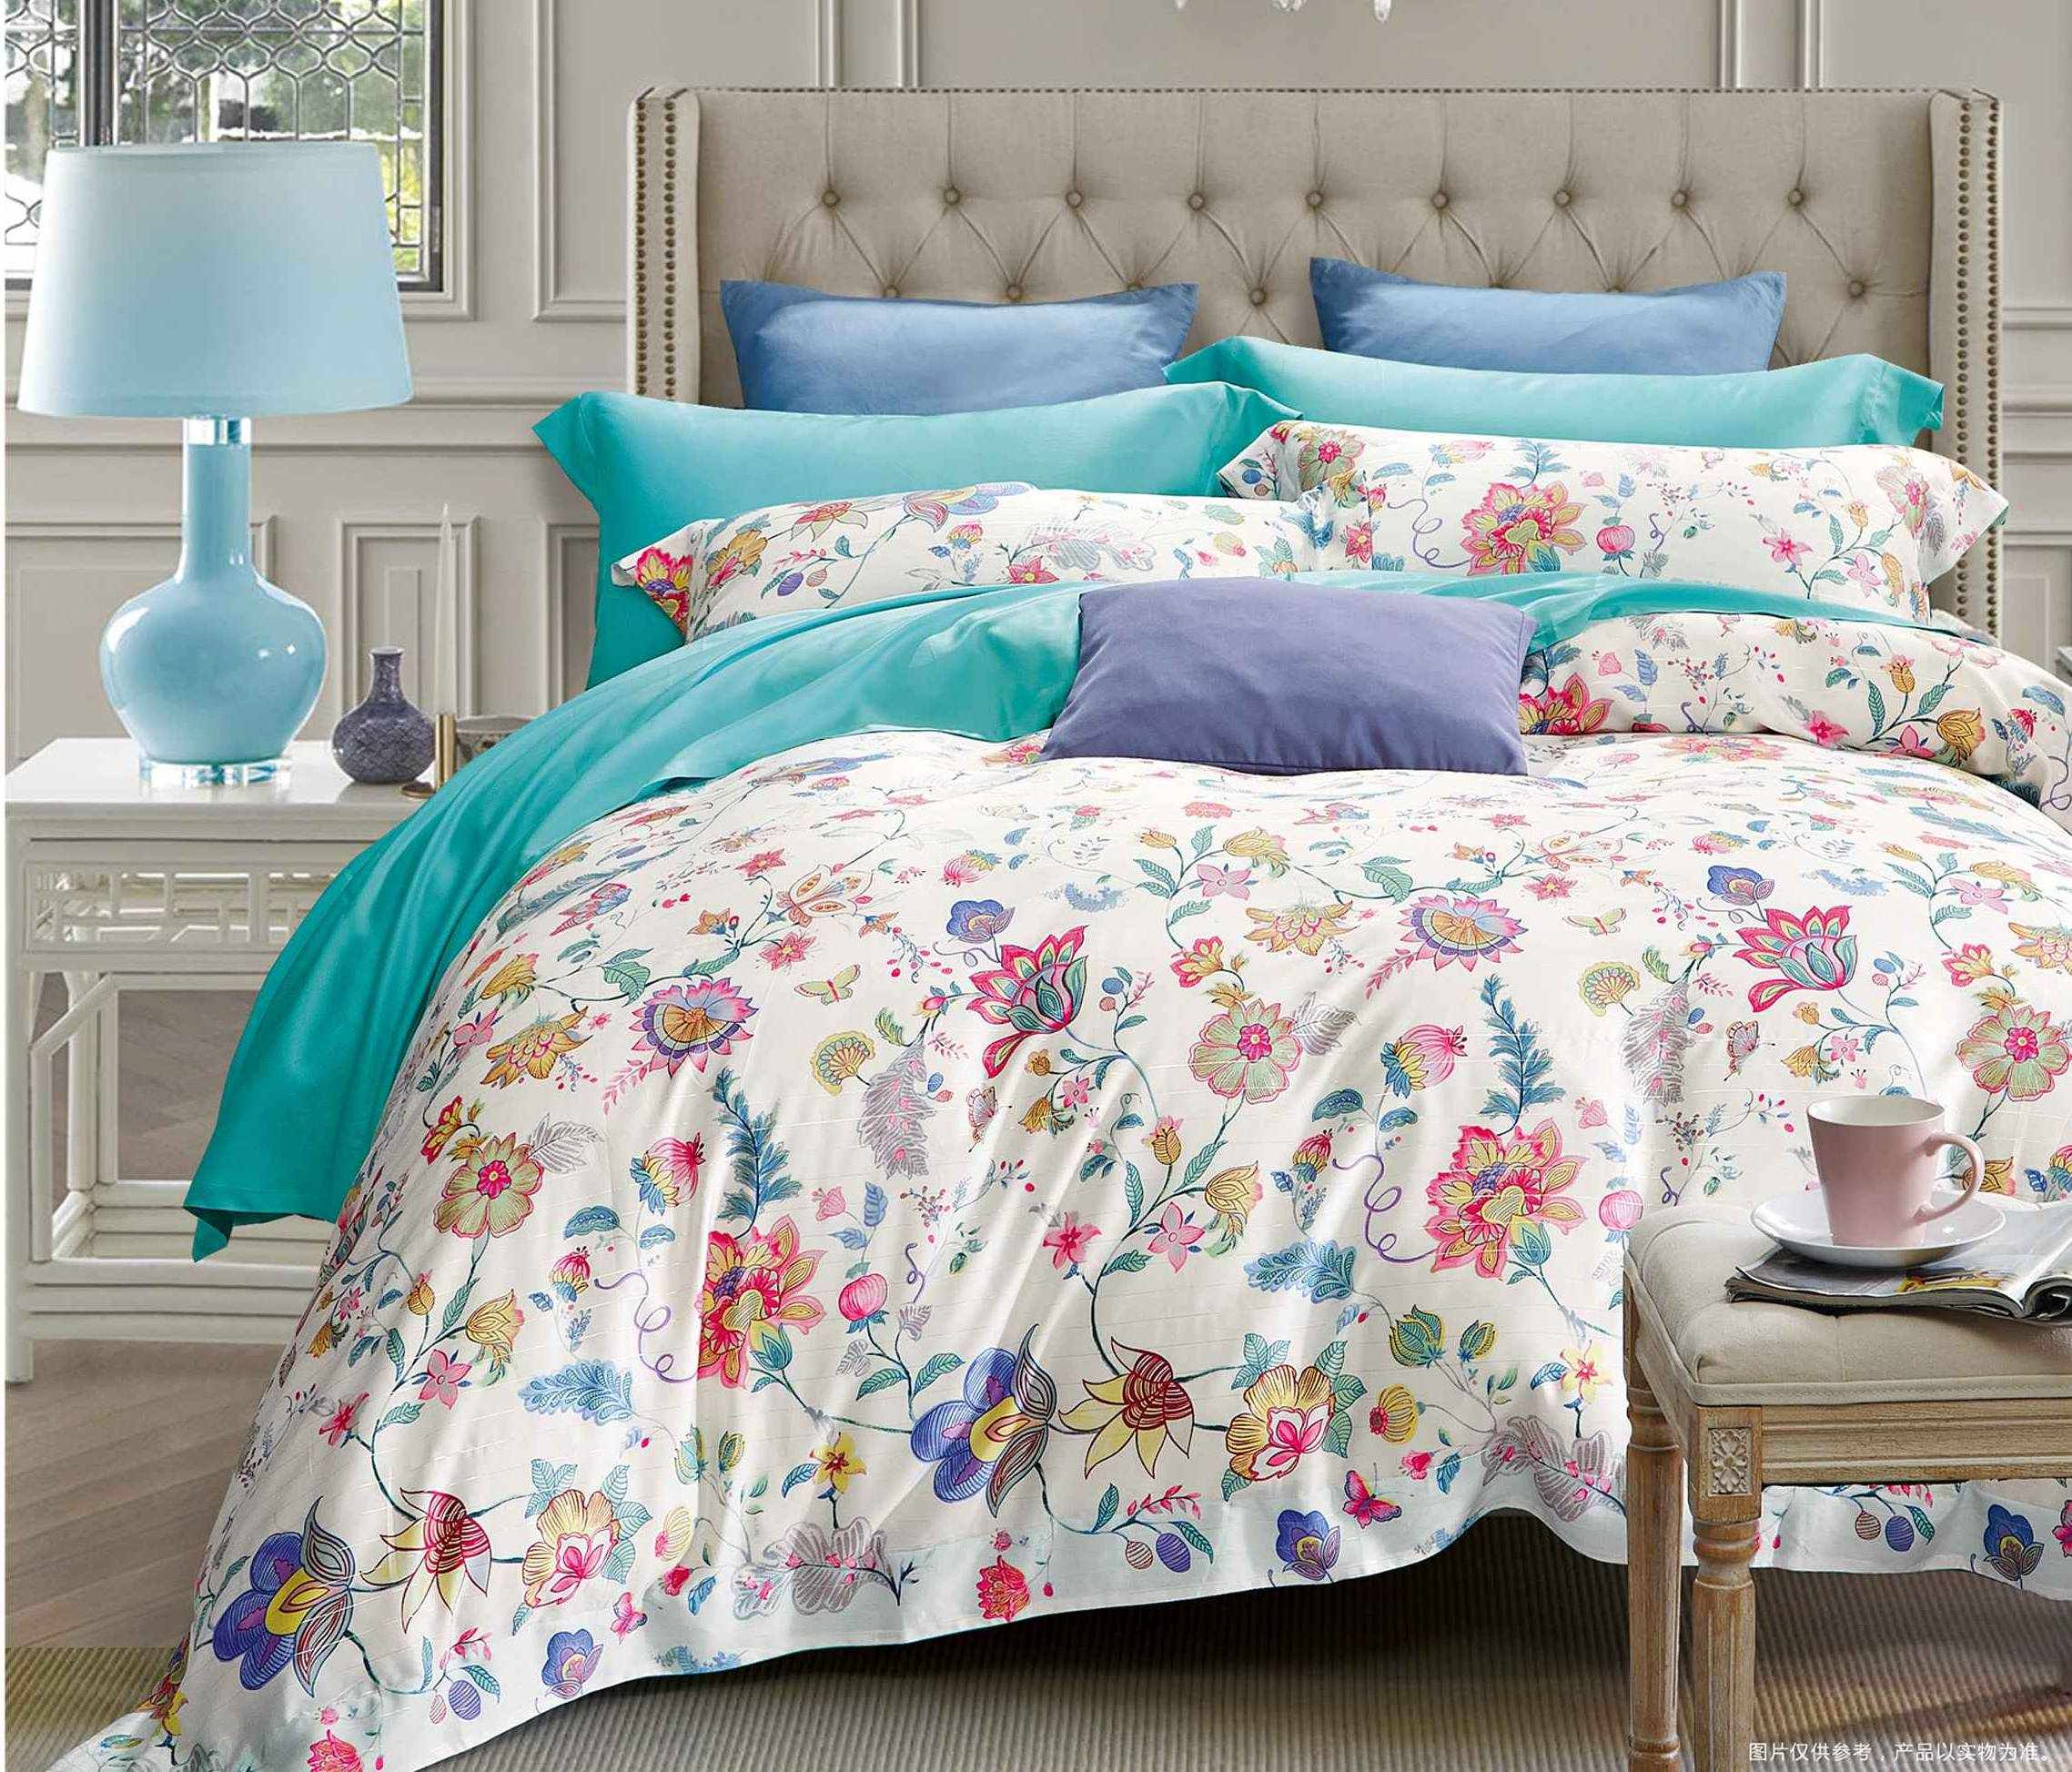 Graphic Floral Prints Lyocell Bedding Set Stylish